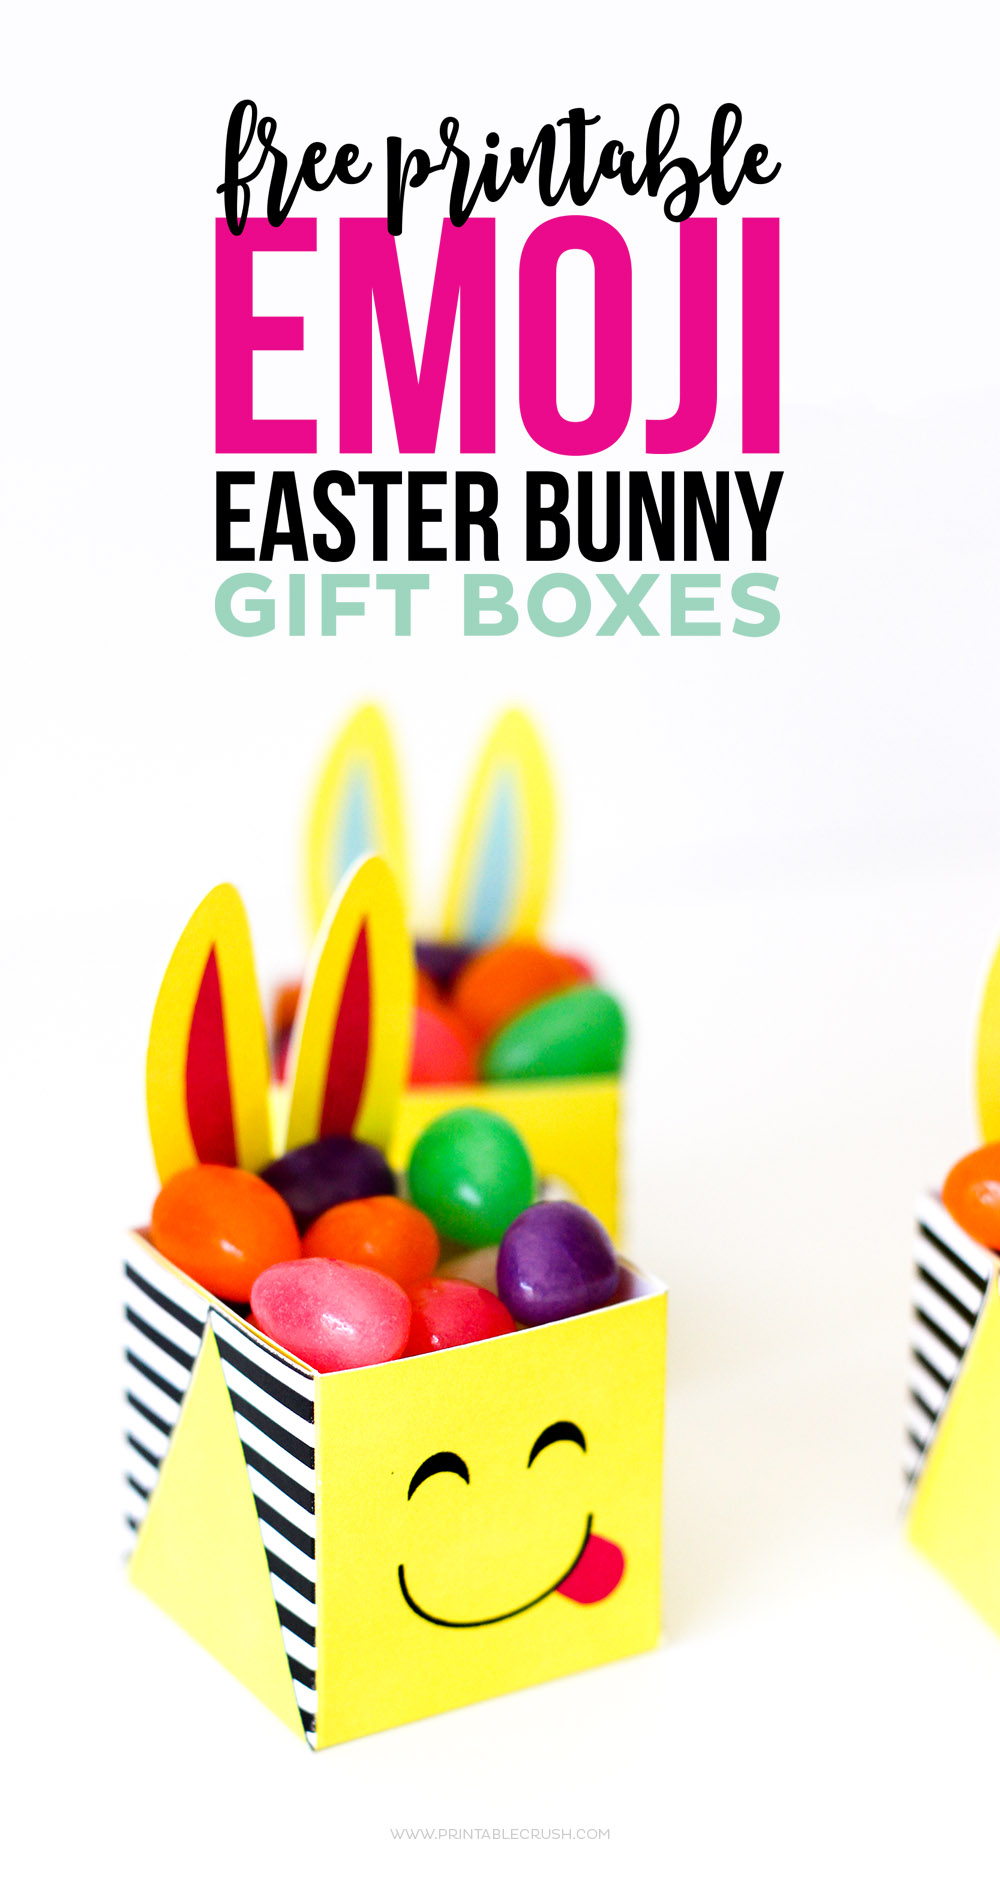 These FREE Printable Emoji Easter Bunny Boxes are the CUTEST little boxes you've ever seen. Your kids will LOVE getting these from the Easter Bunny!